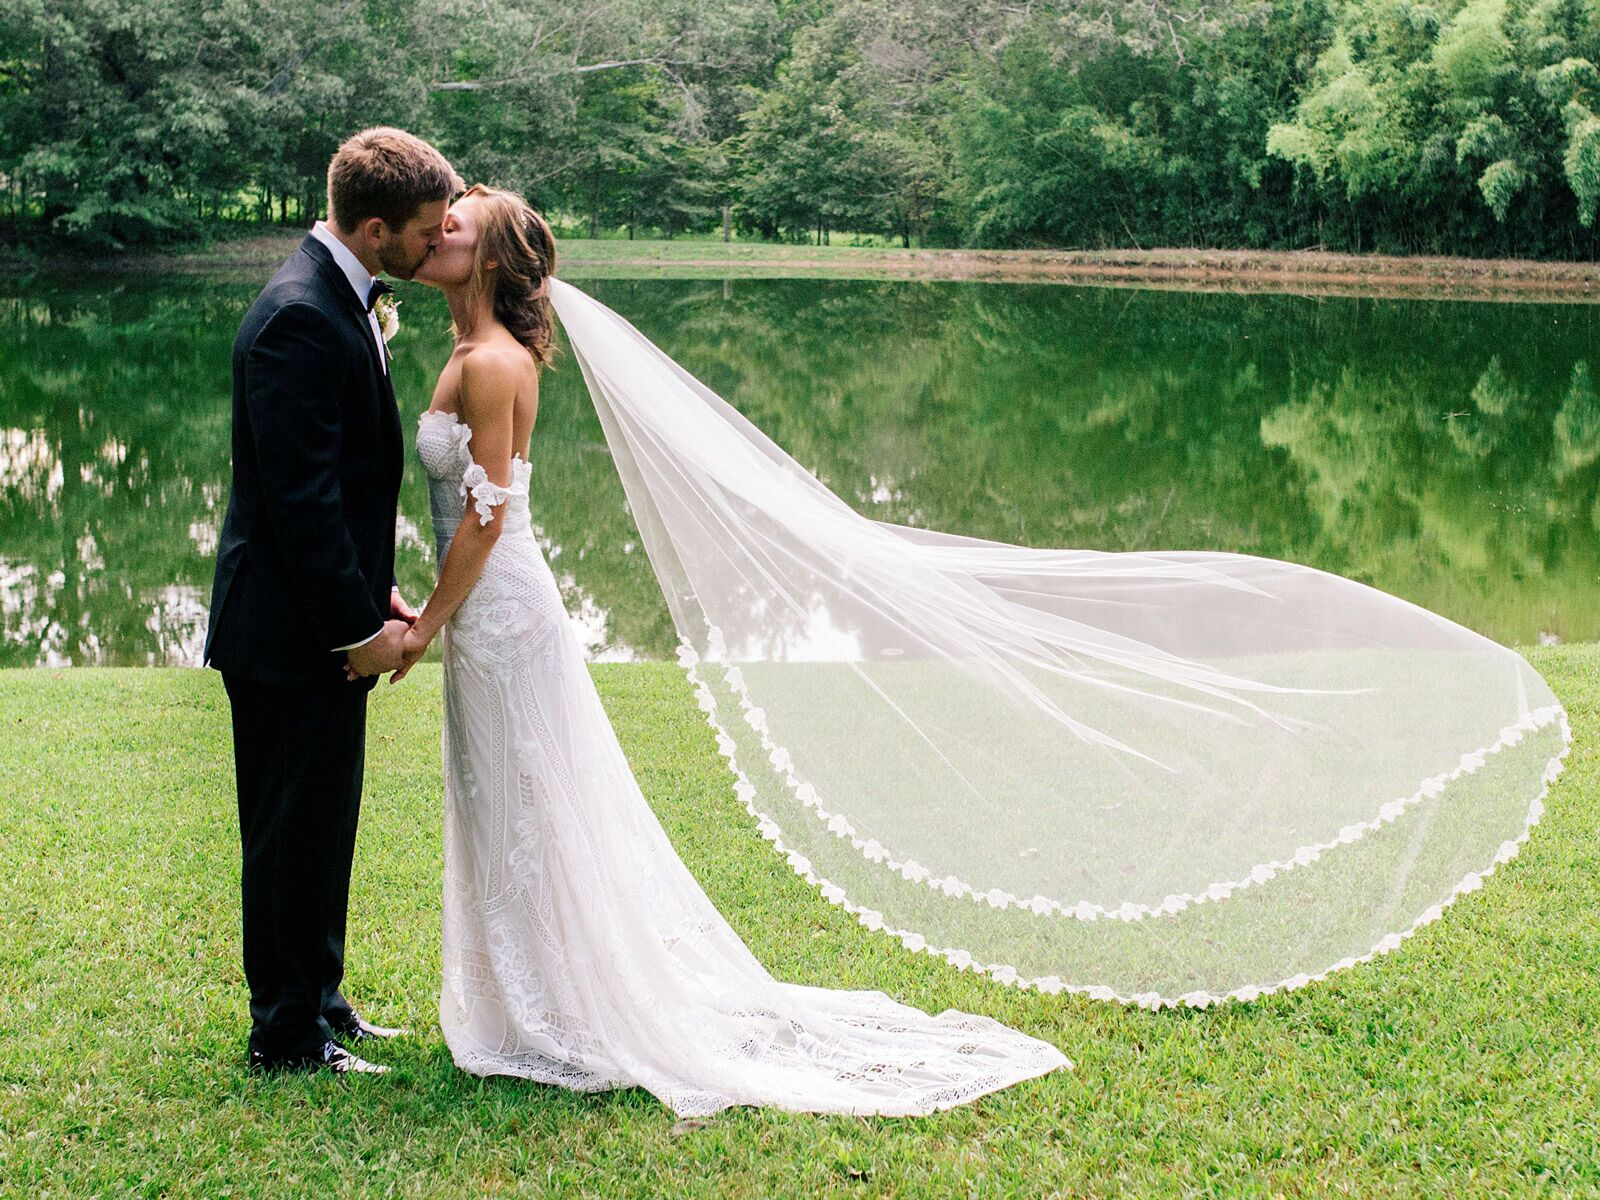 The Best Time To Take Off Your Wedding Veil